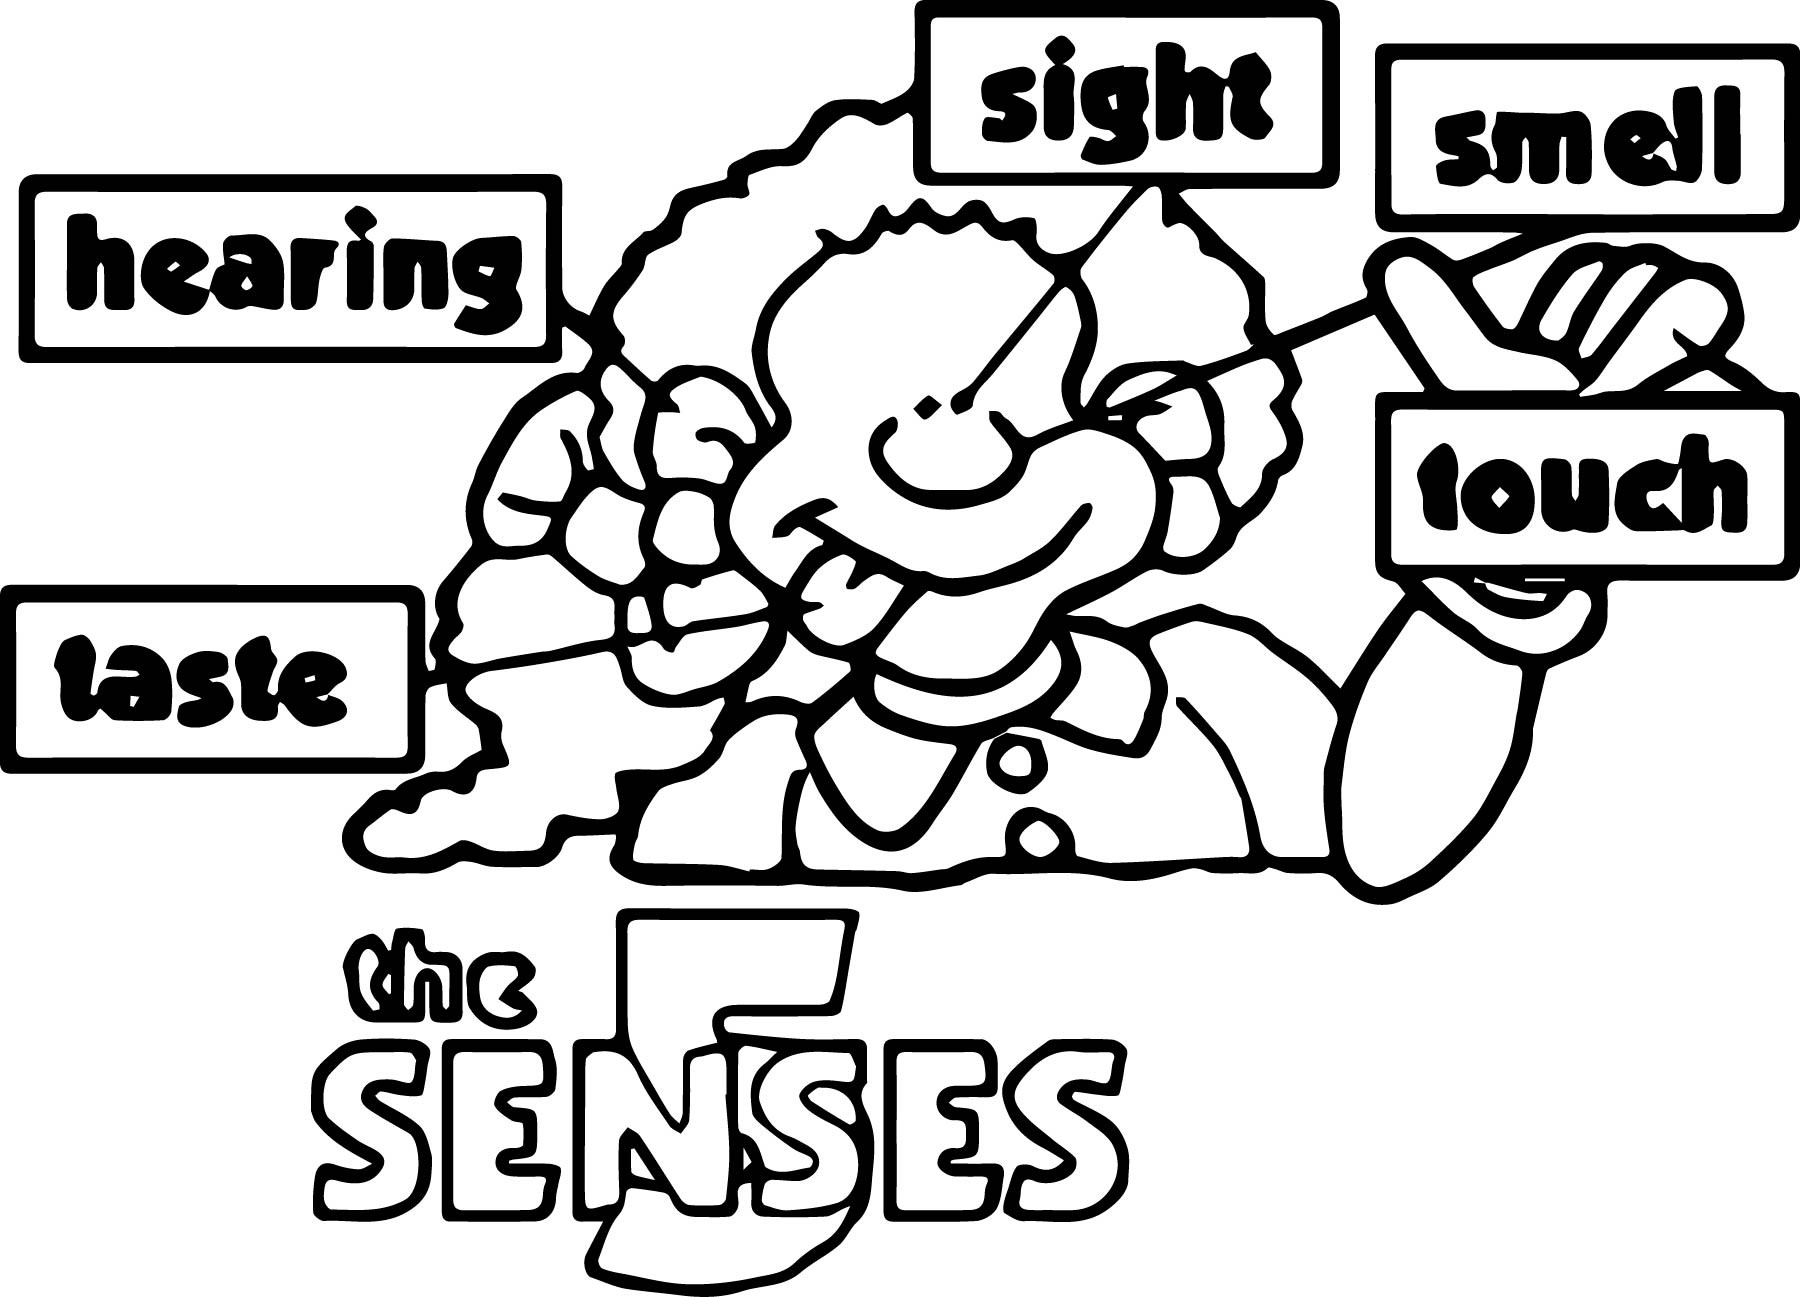 5 Senses Coloring Pages  The 5 Senses Coloring Page